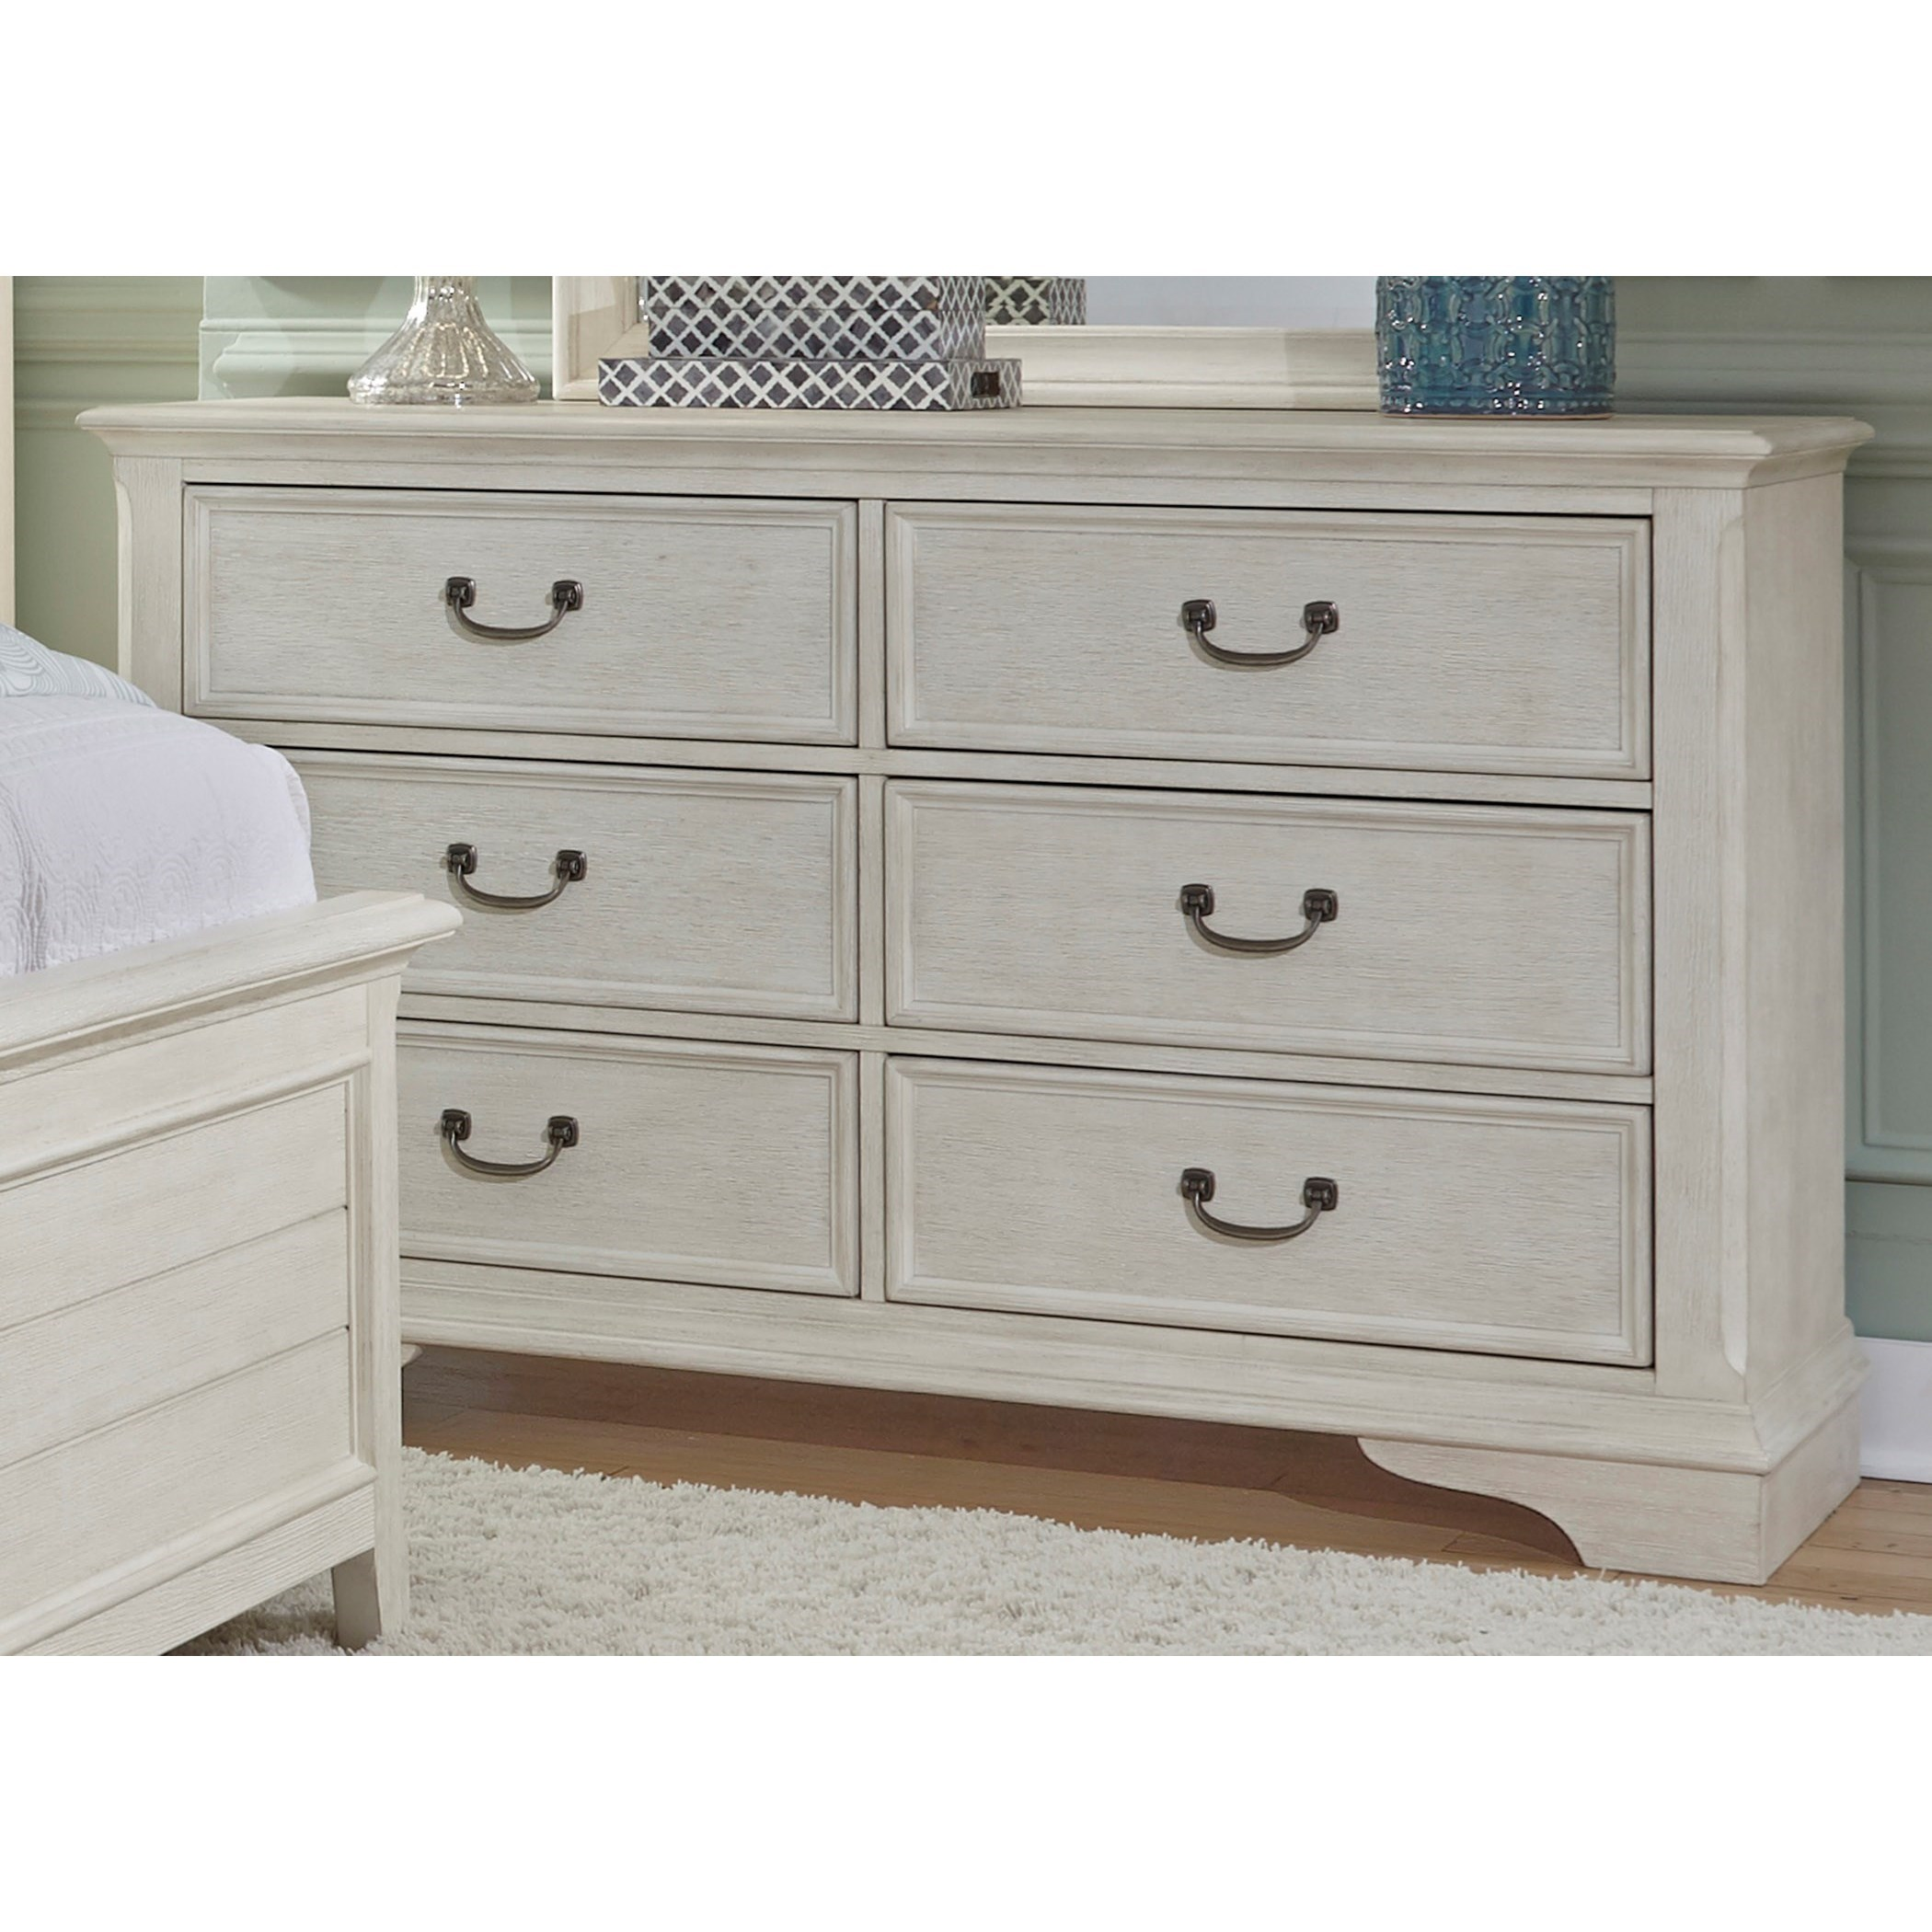 details bright standout way room drawer s living vivienne features dressers dorel most dresser products by your make storage elegant the white child glamorous and eng bedroom this chic in sourceimage with